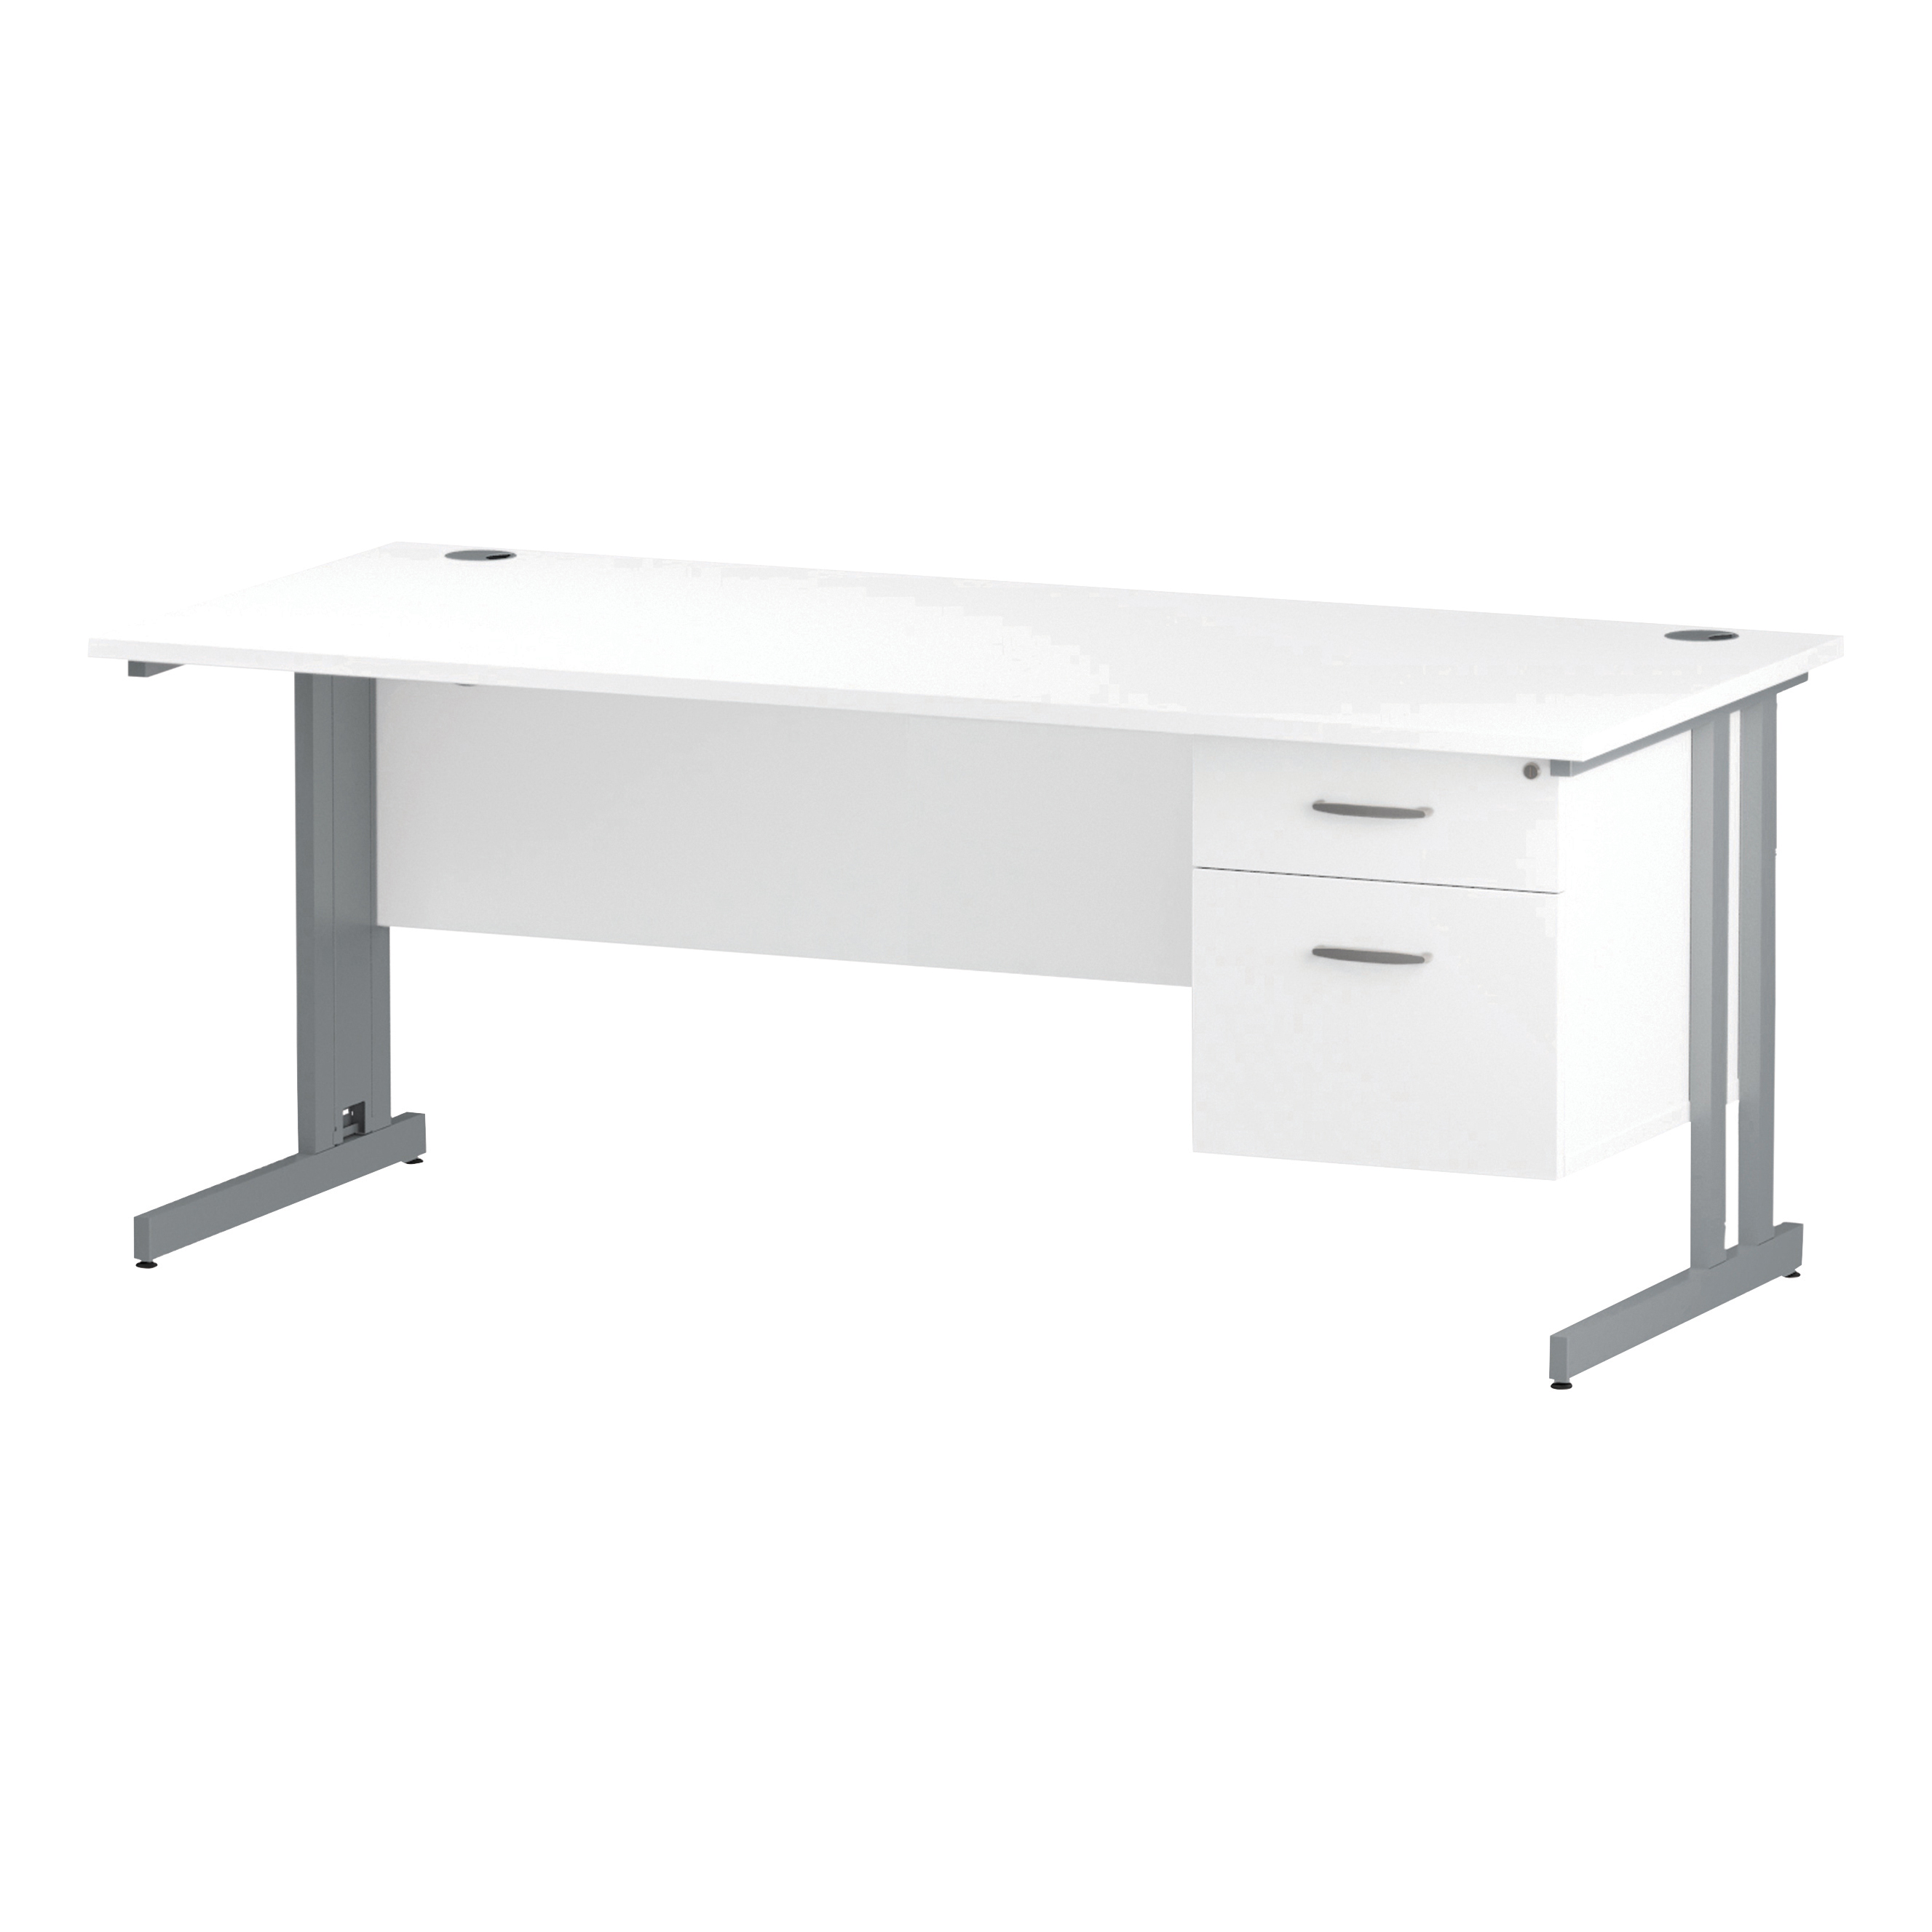 Trexus Rectangular Desk Silver Cantilever Leg 1800x800mm Fixed Pedestal 2 Drawers White Ref I002208